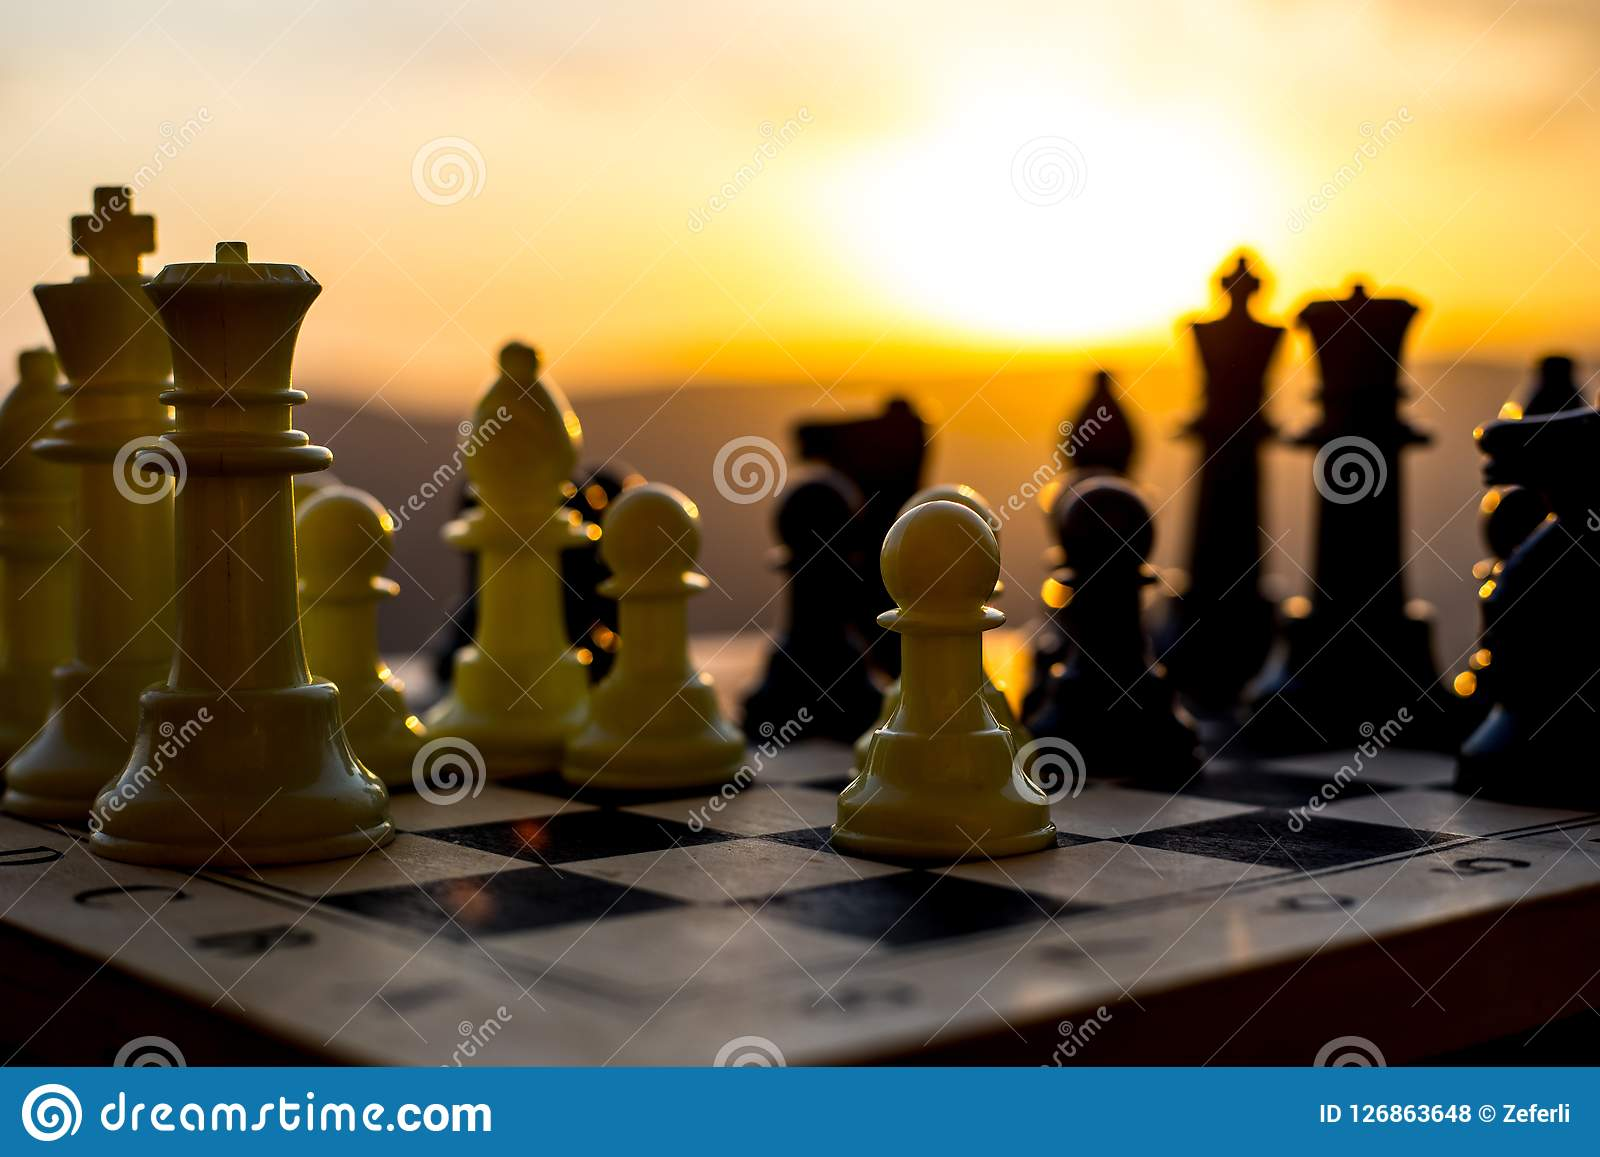 chess board game concept of business ideas and competition and strategy ideas. Chess figures on a chessboard outdoor sunset backgr